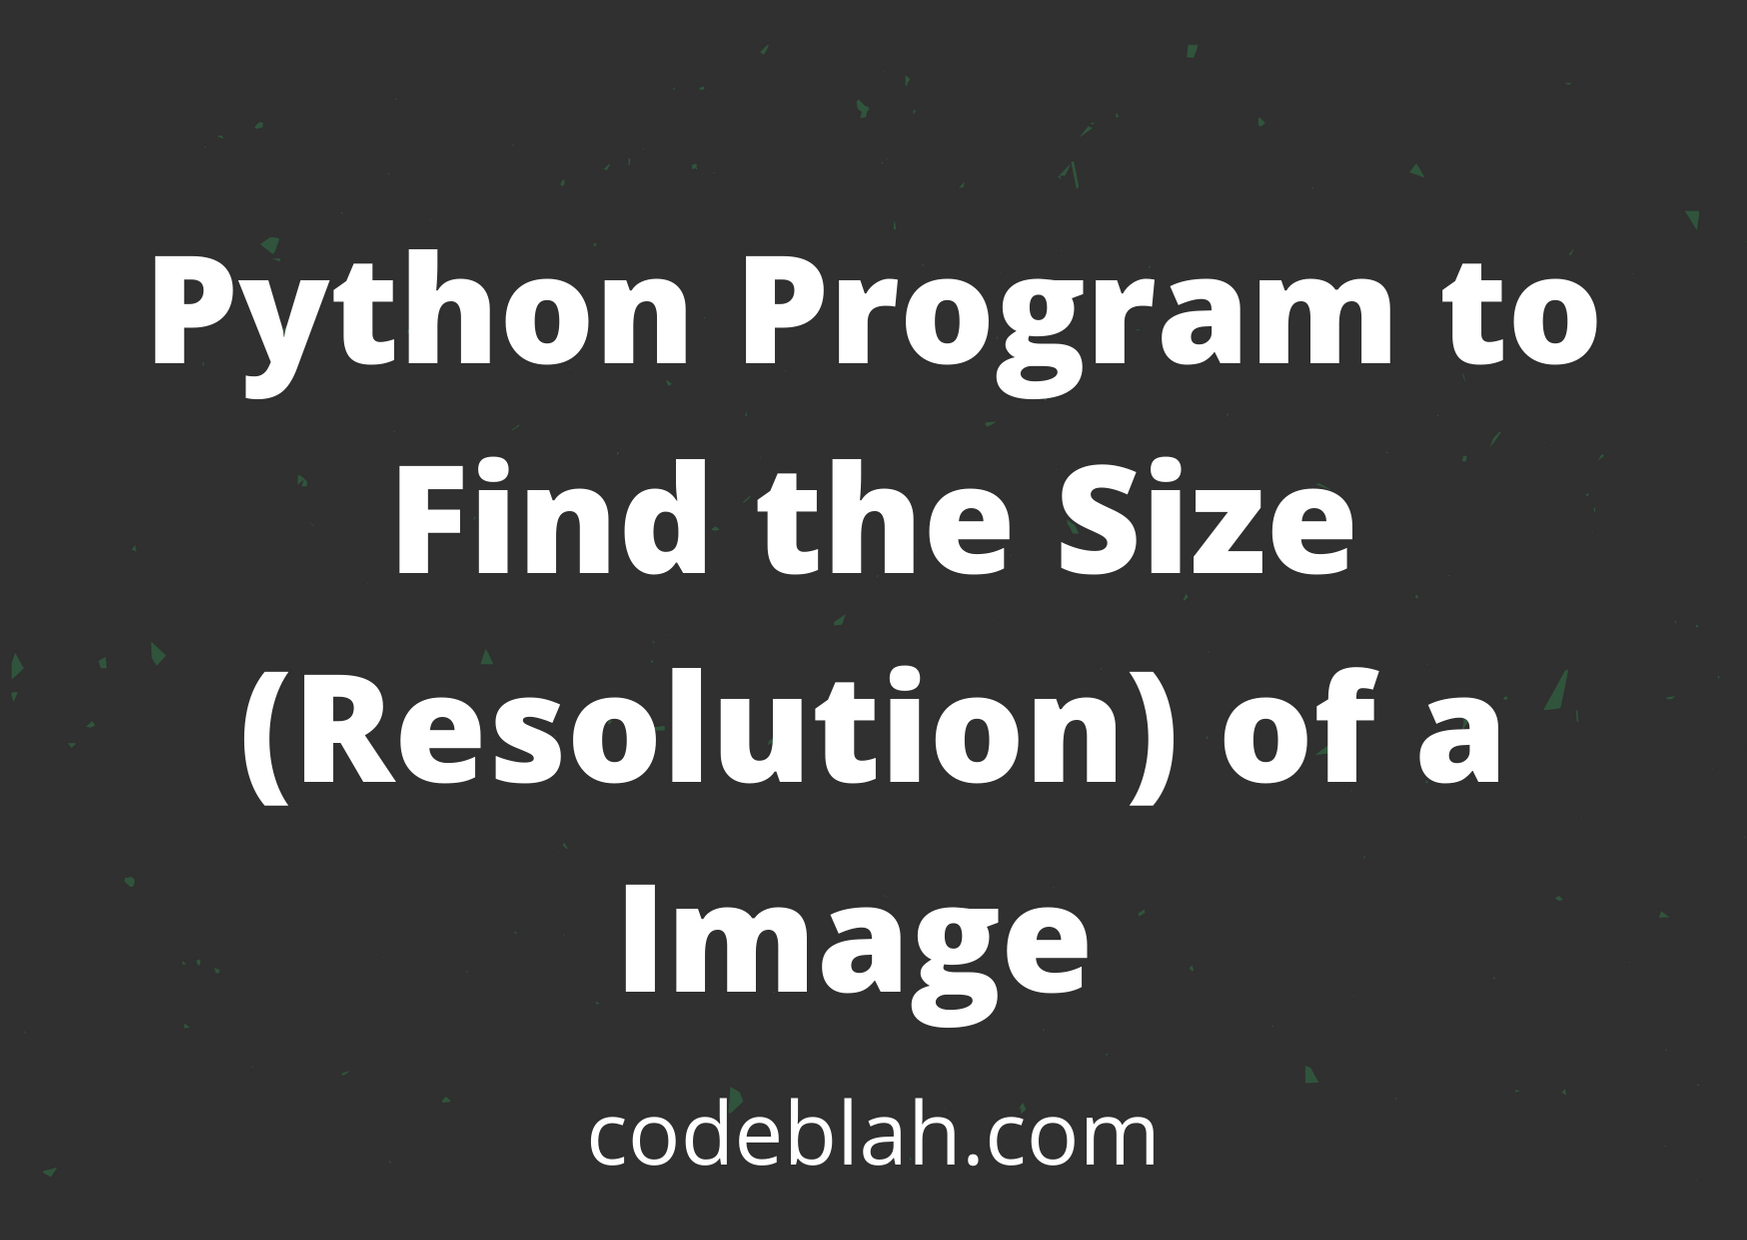 Python Program to Find the Size (Resolution) of a Image